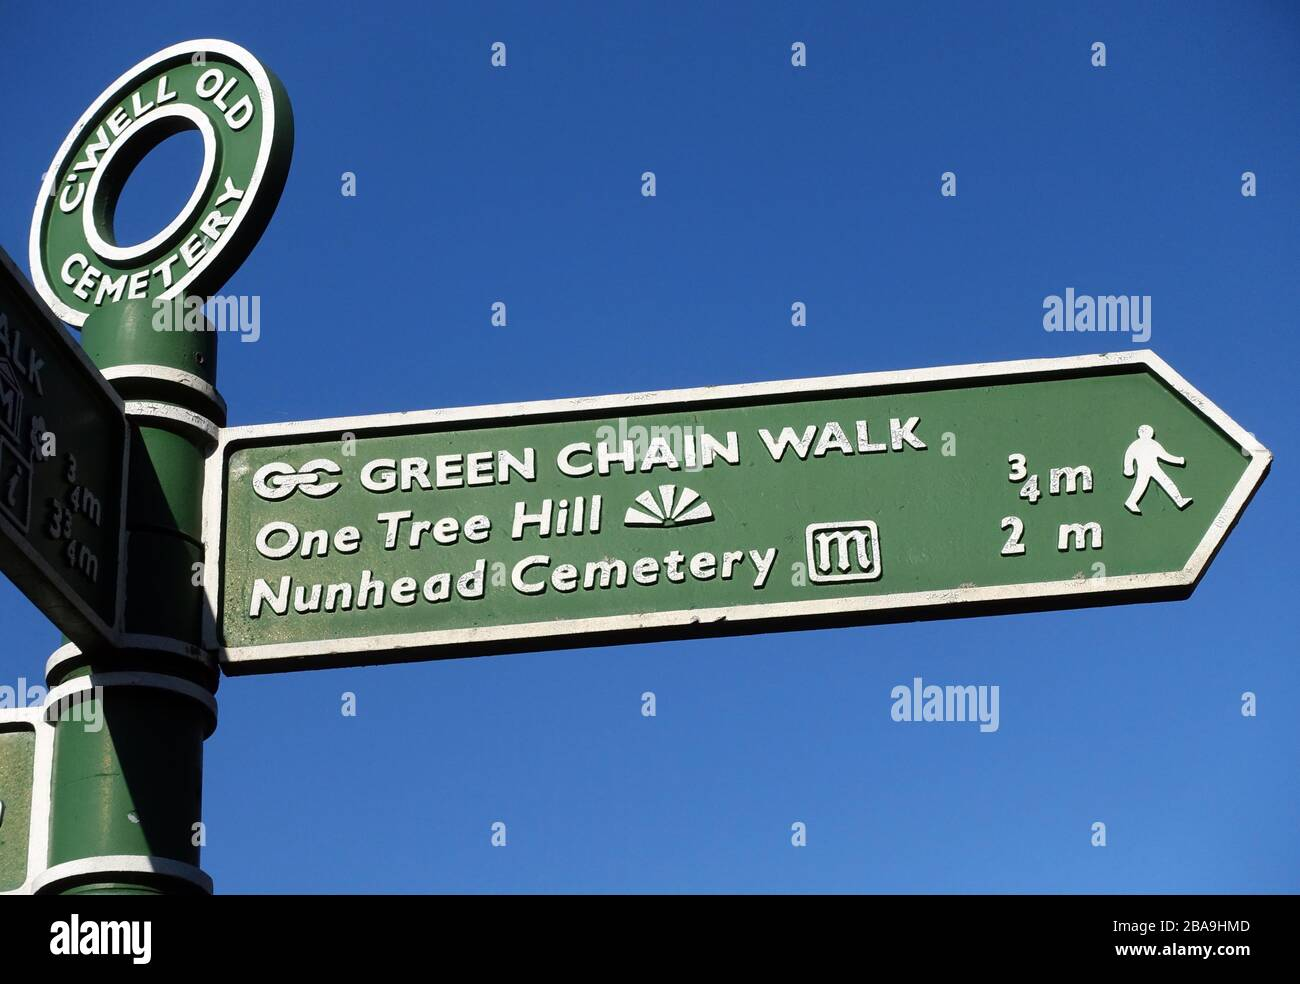 Sign for Green Chain Walk in South London Stock Photo